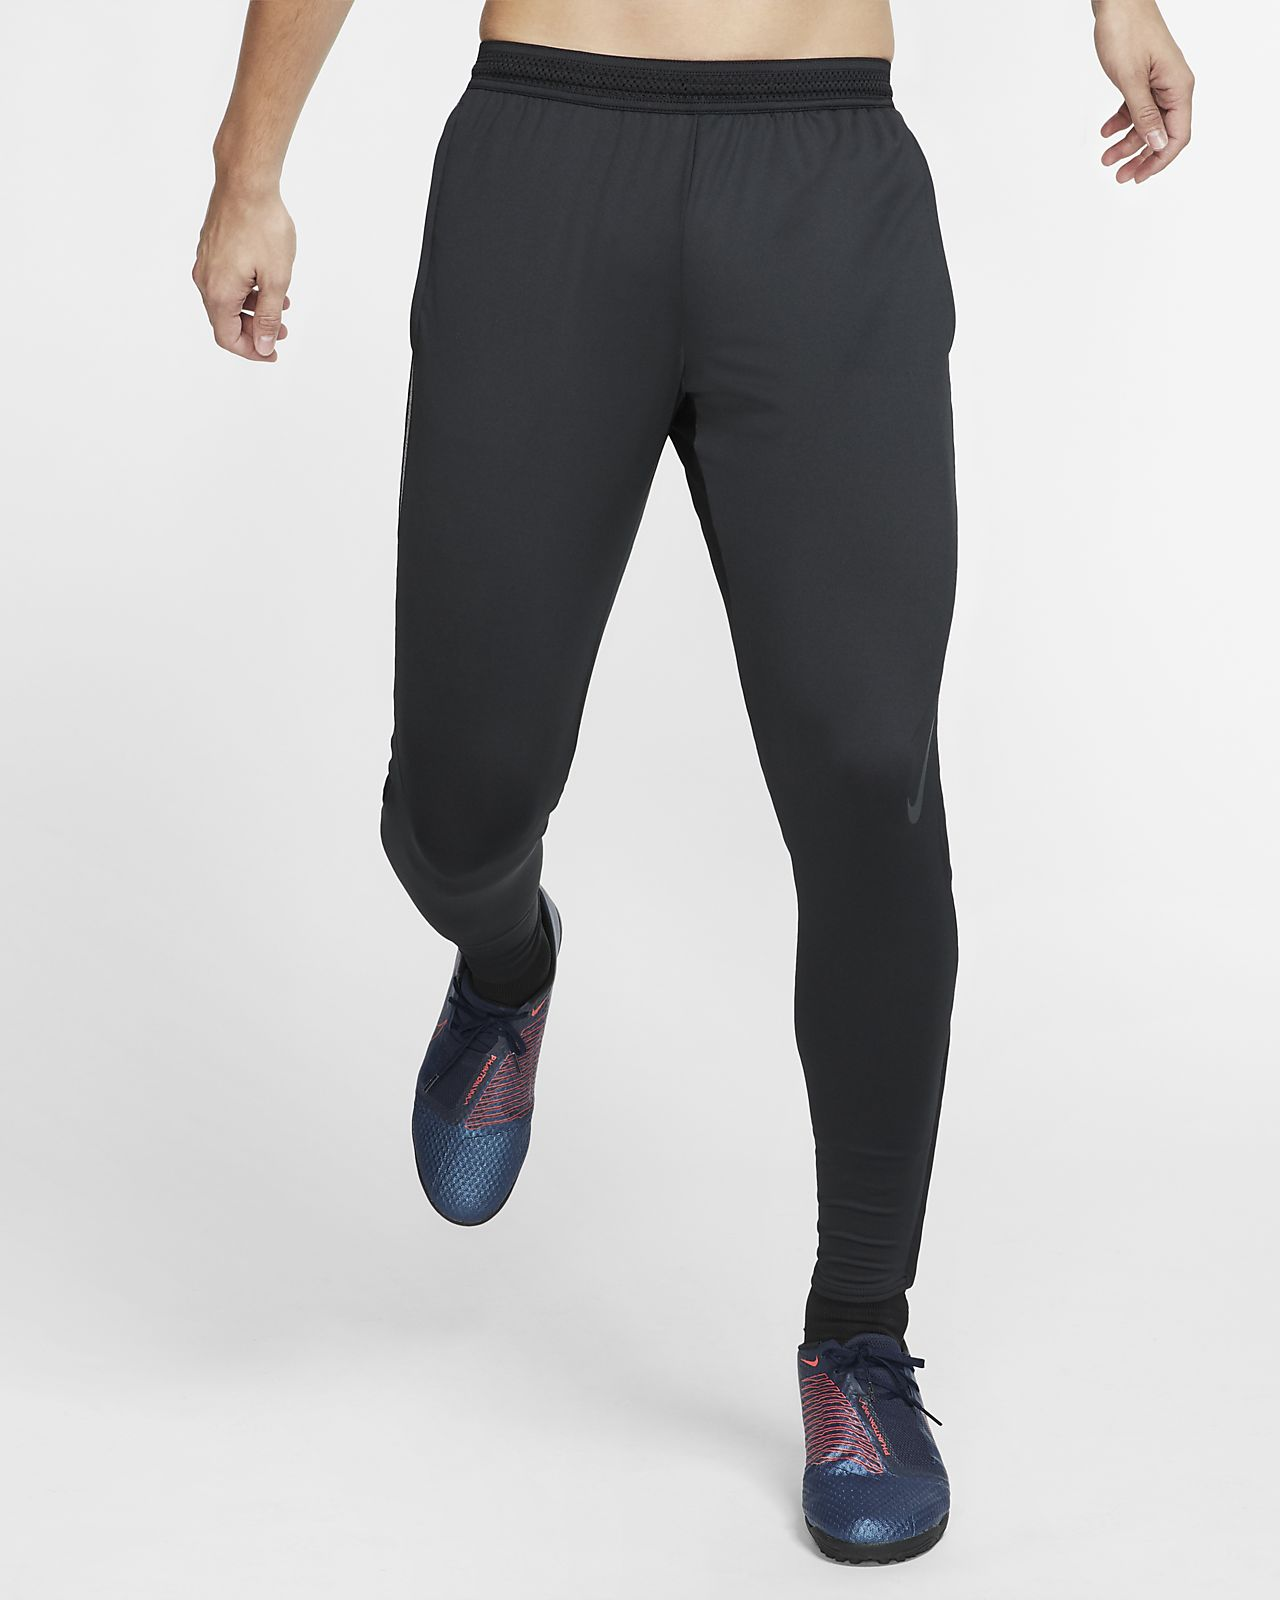 6577aad636 Nike Dri-FIT Strike Men's Soccer Pants